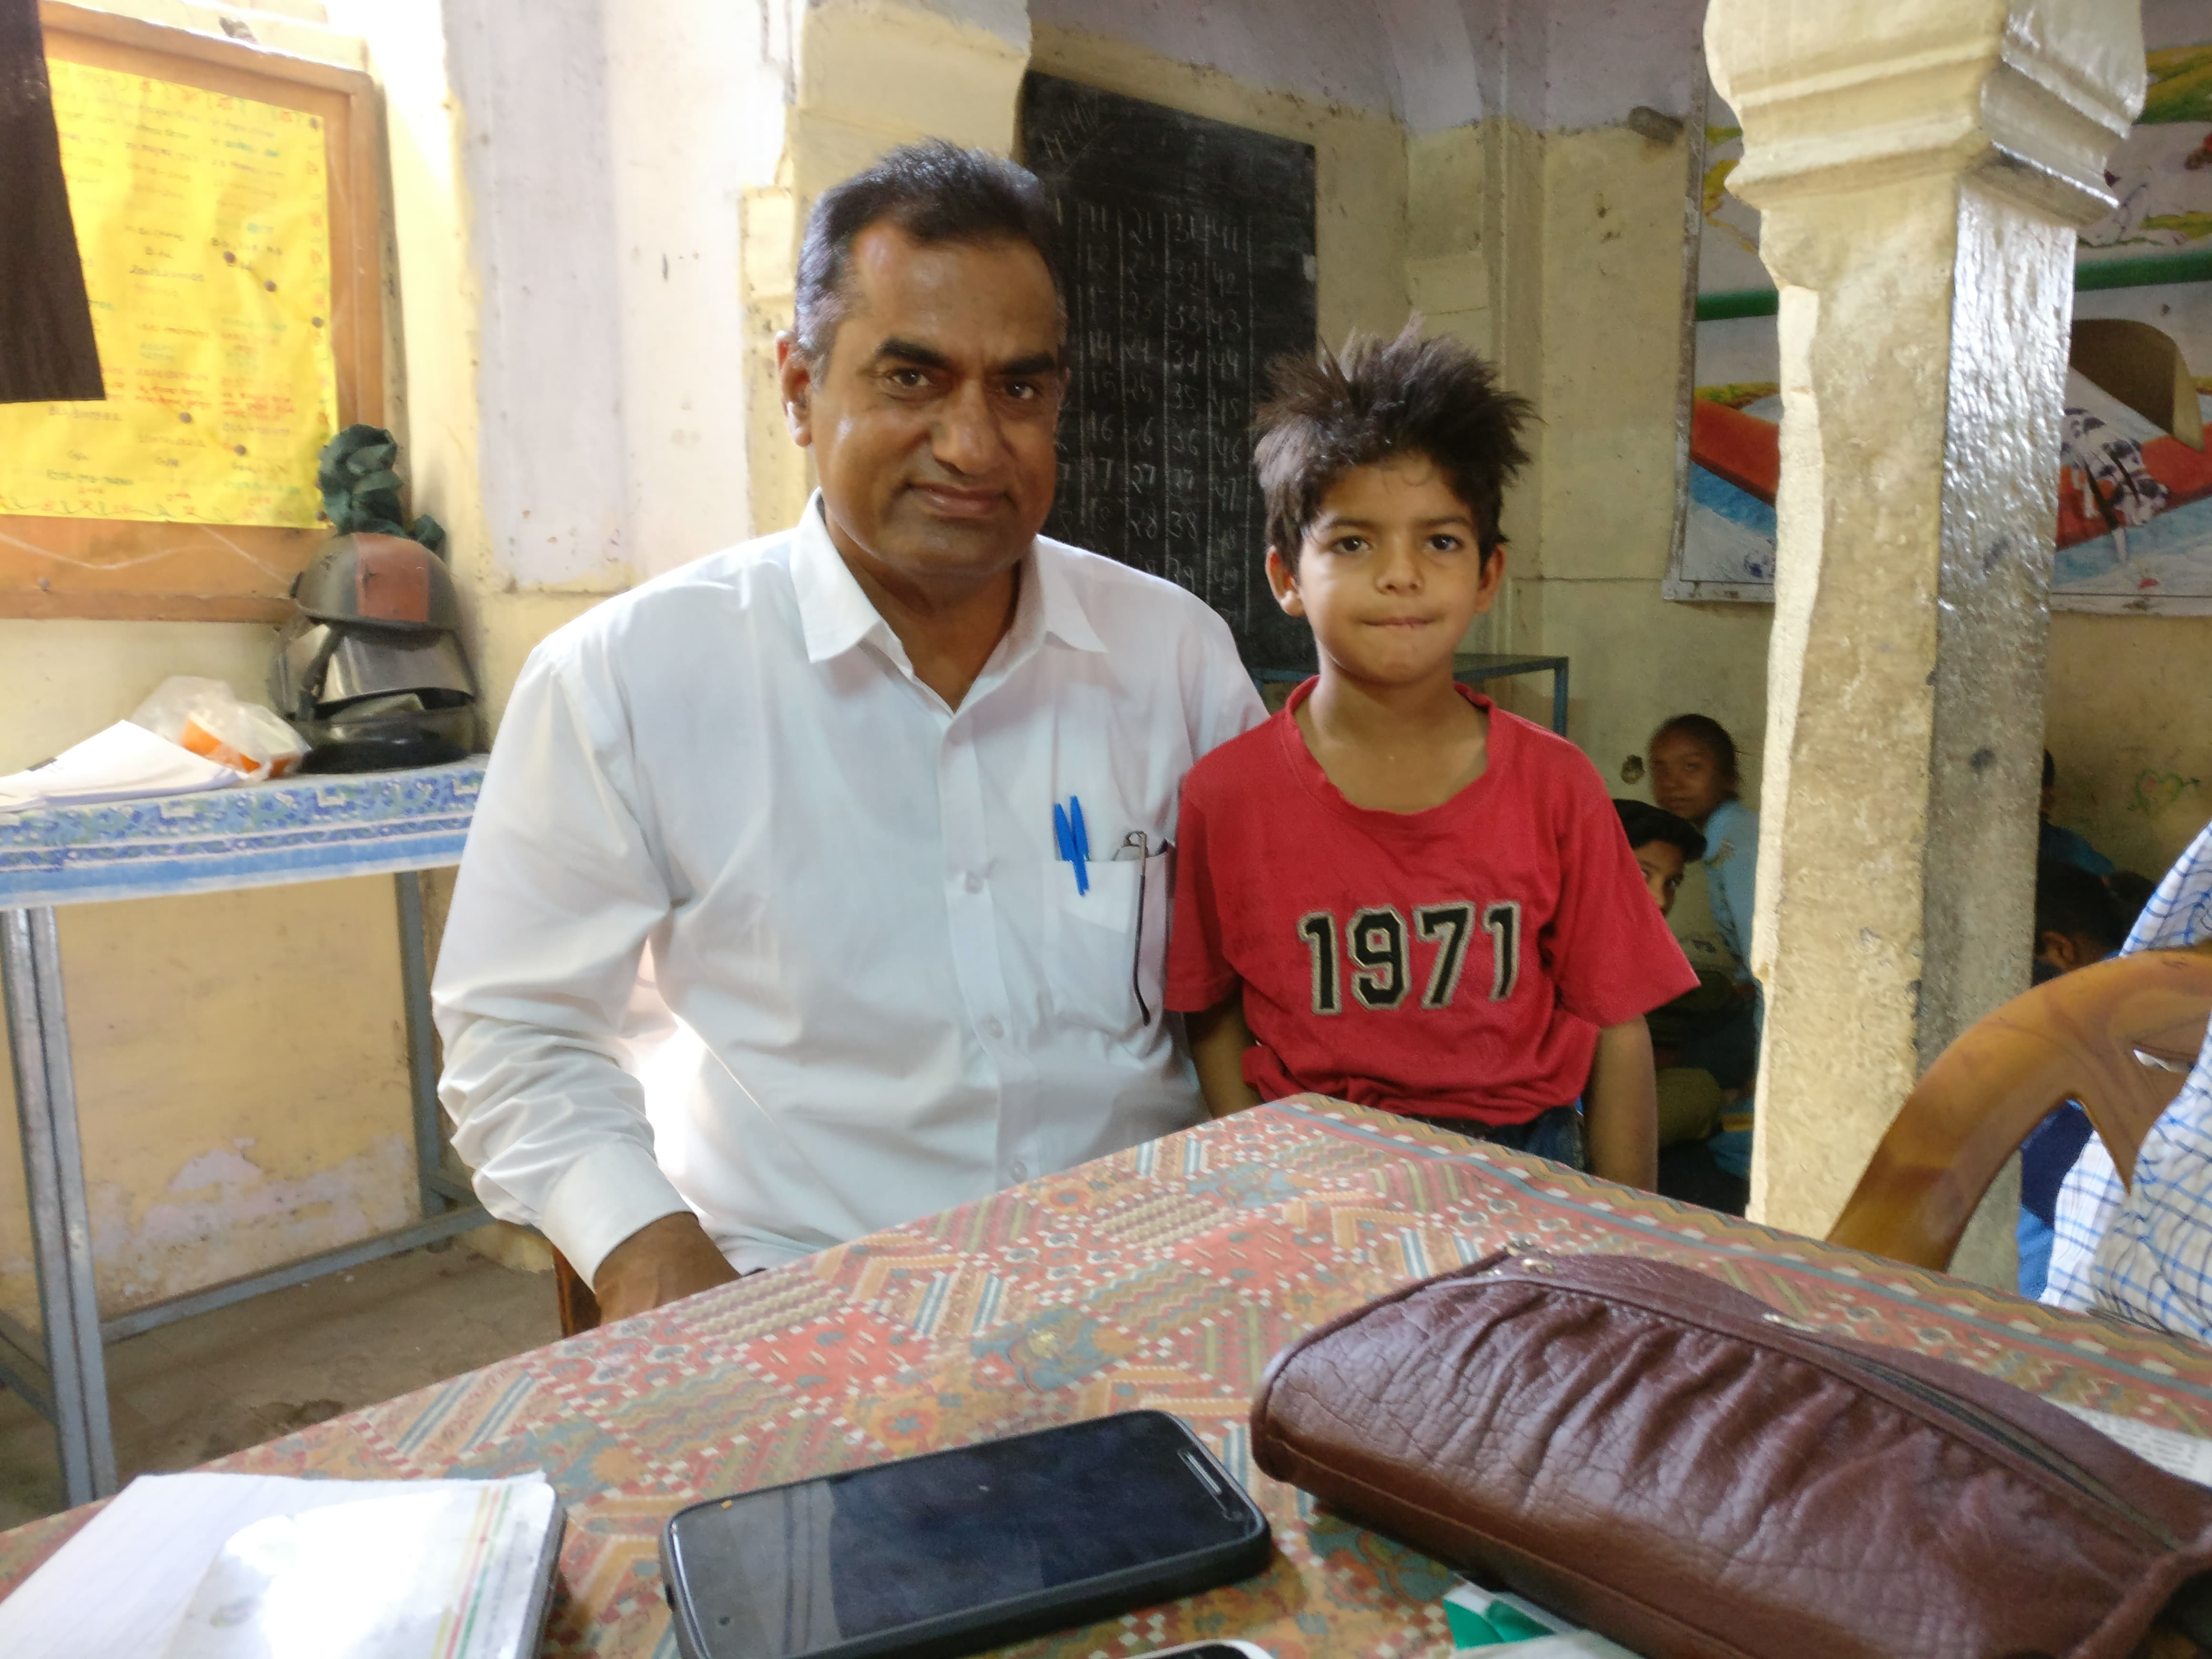 Teacher Puranmal Dayal and first-grader Gaurav Sharma moved to the senior school in Durgapur when their old primary school merged into it.